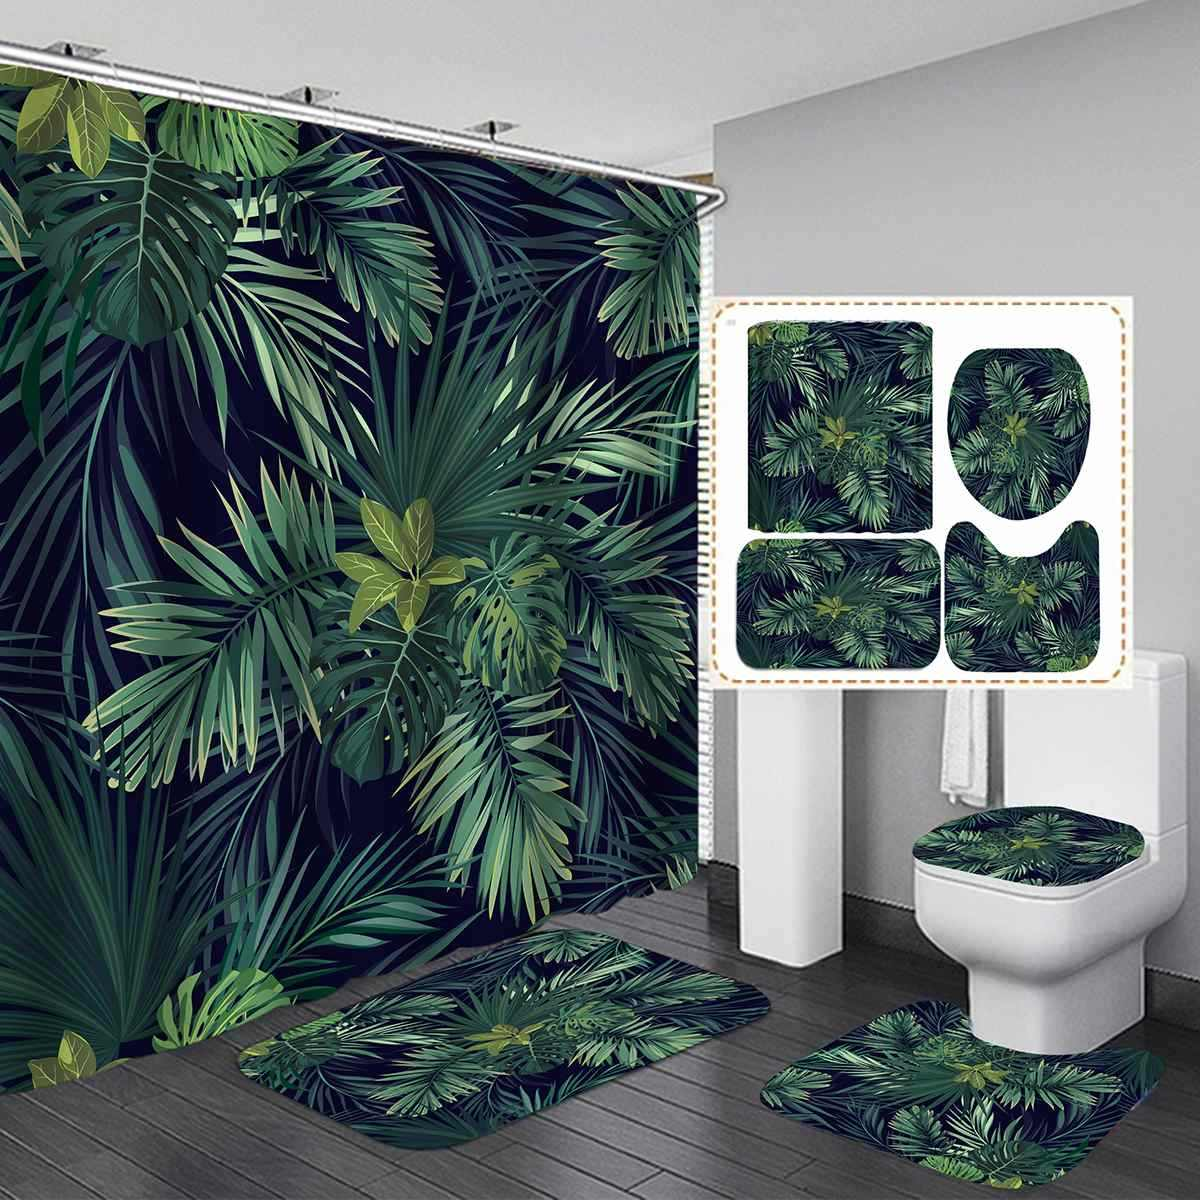 Green Tropical Plant Leaves Printed Curtain For Bathroom Shower Anti-slip Bath Mat Sets Toilet Cover Kitchen Carpet